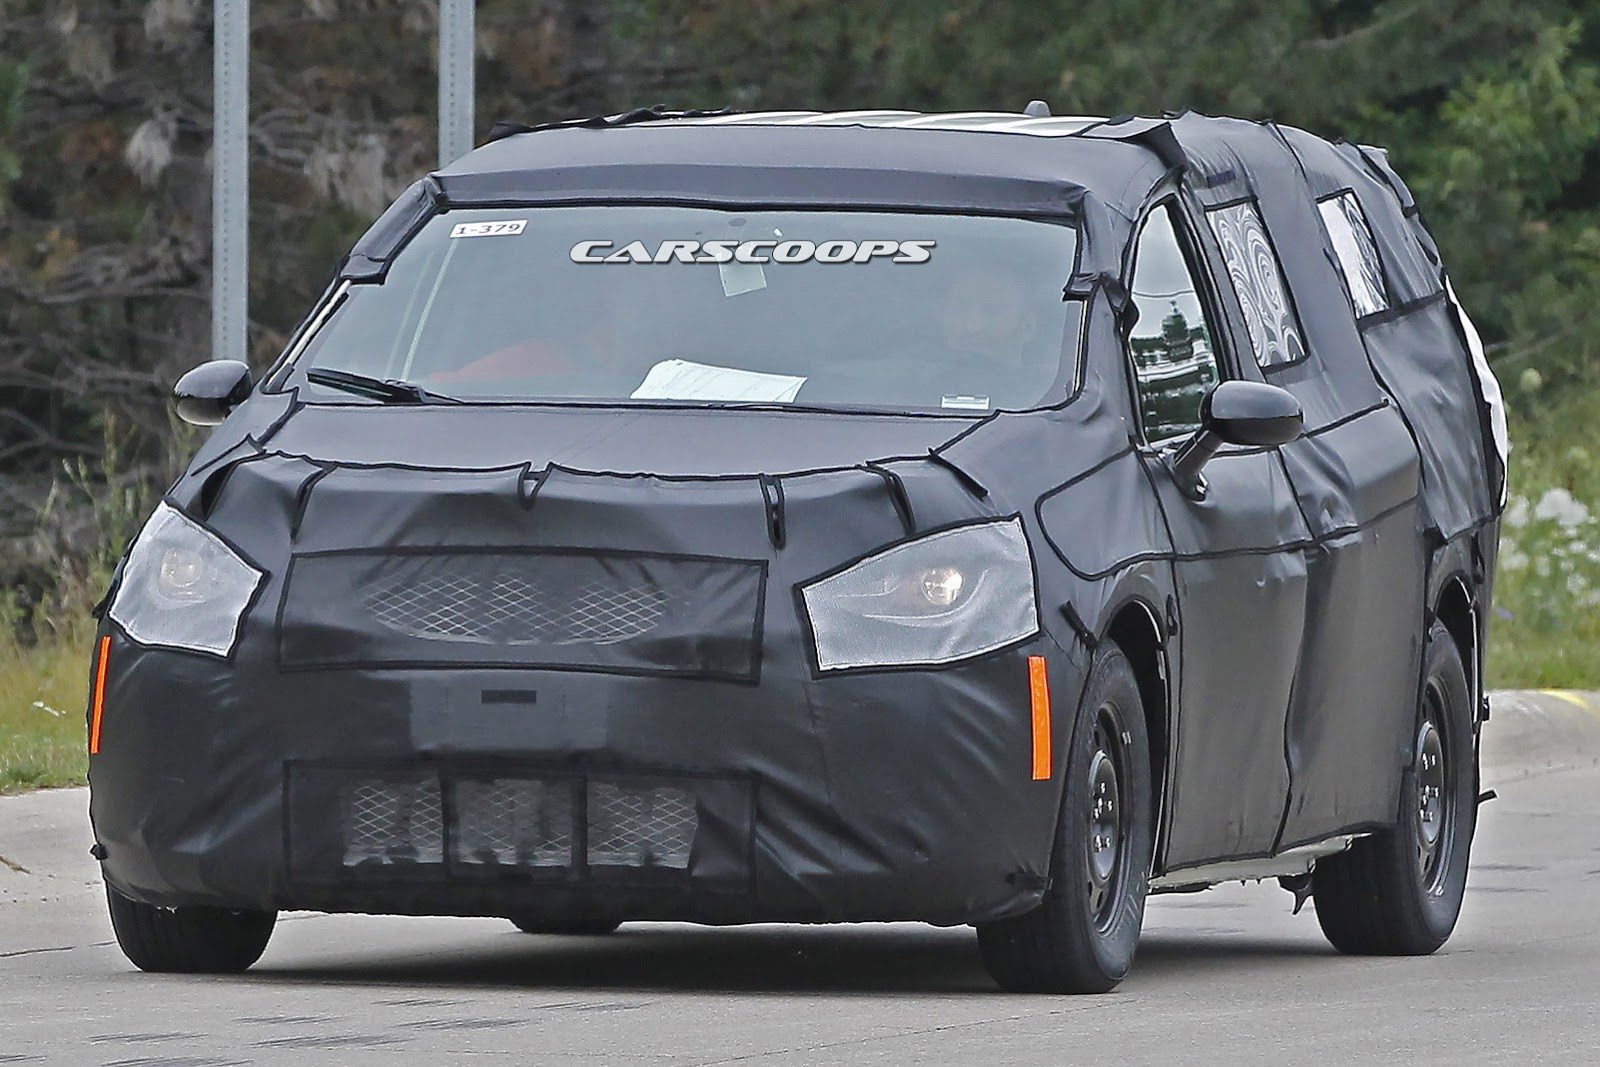 2019 Chrysler Town and Country photo - 1